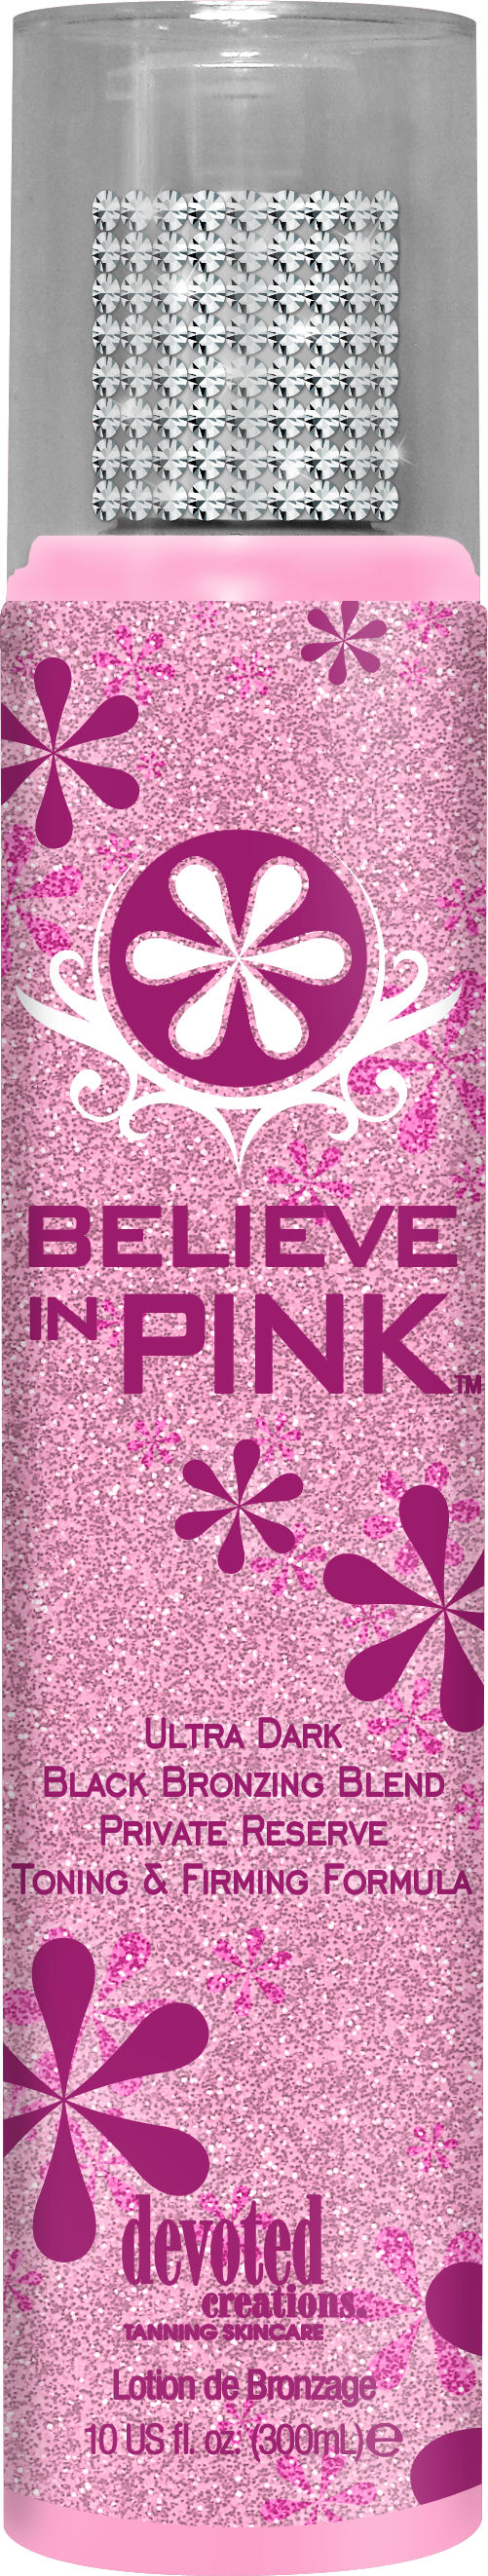 Believe In Pink™ Private Reserve